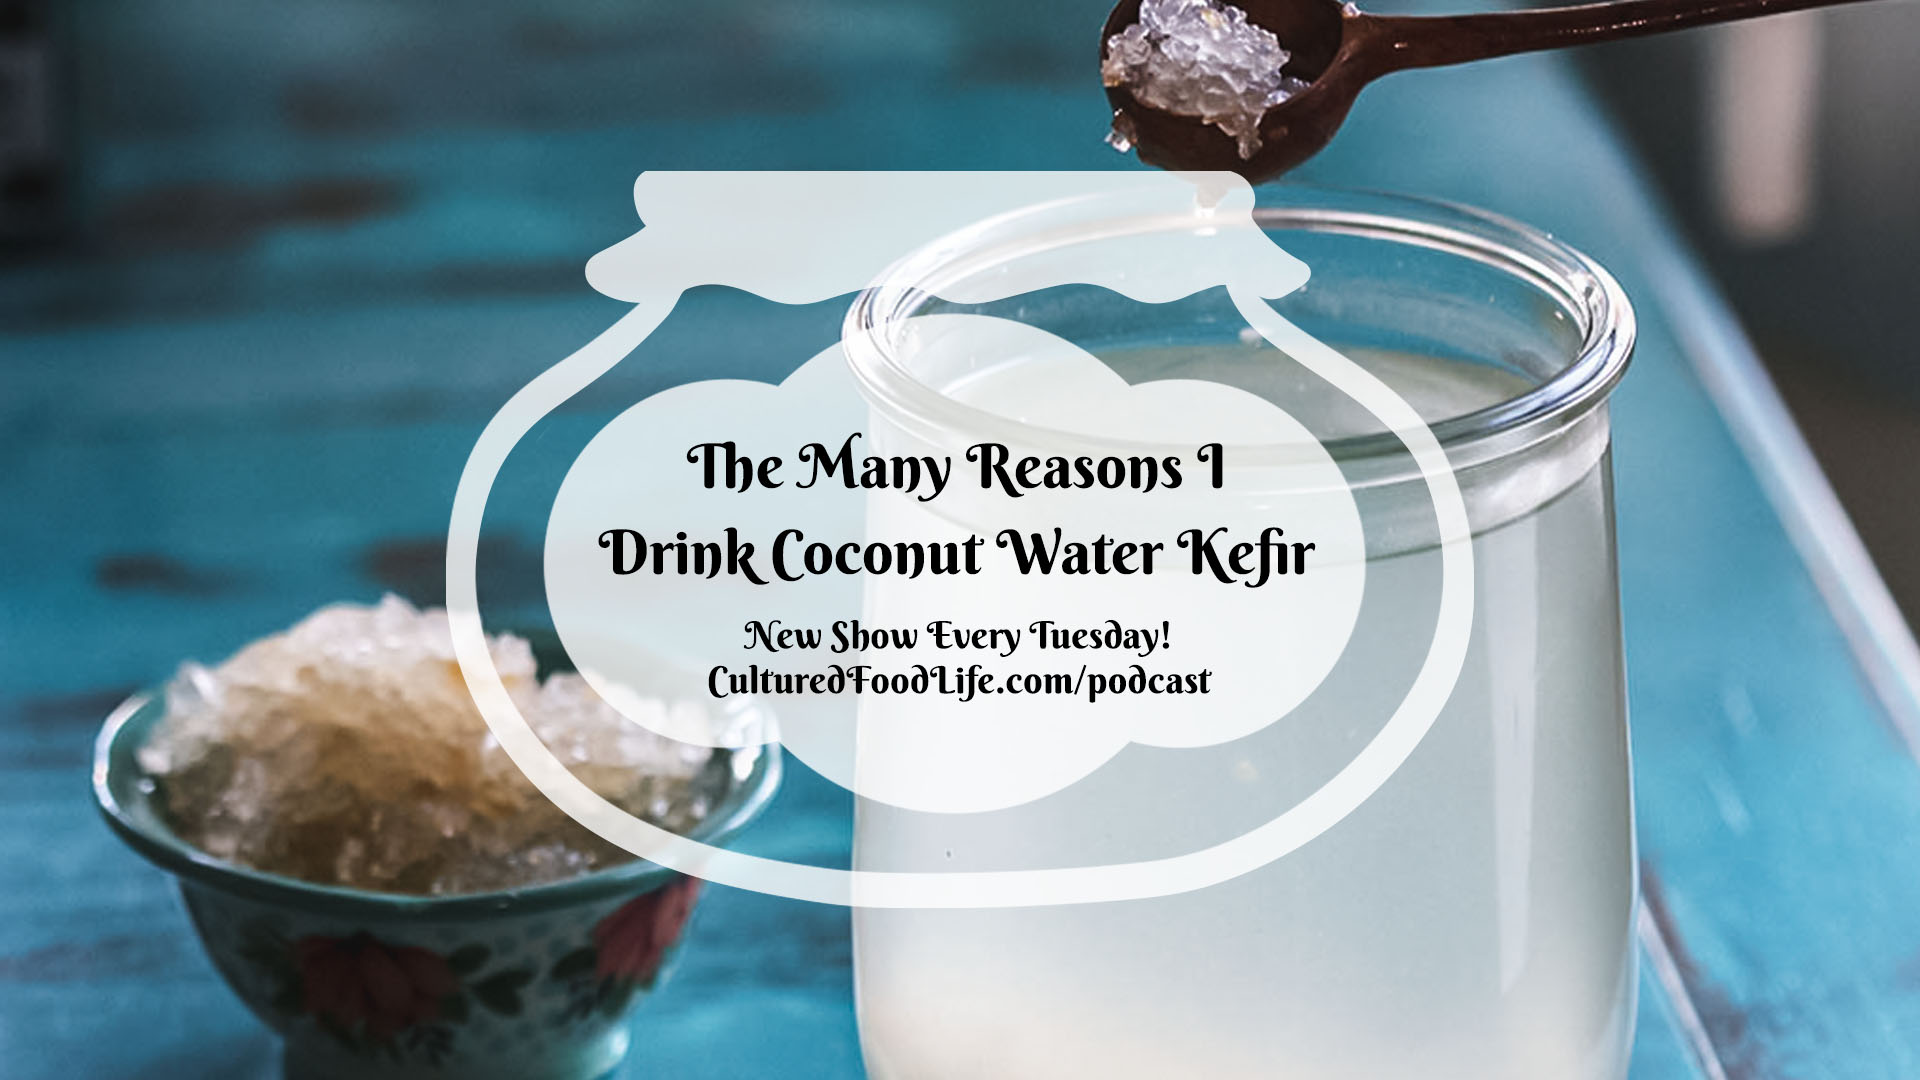 The Many Reasons I Drink Coconut Water Kefir